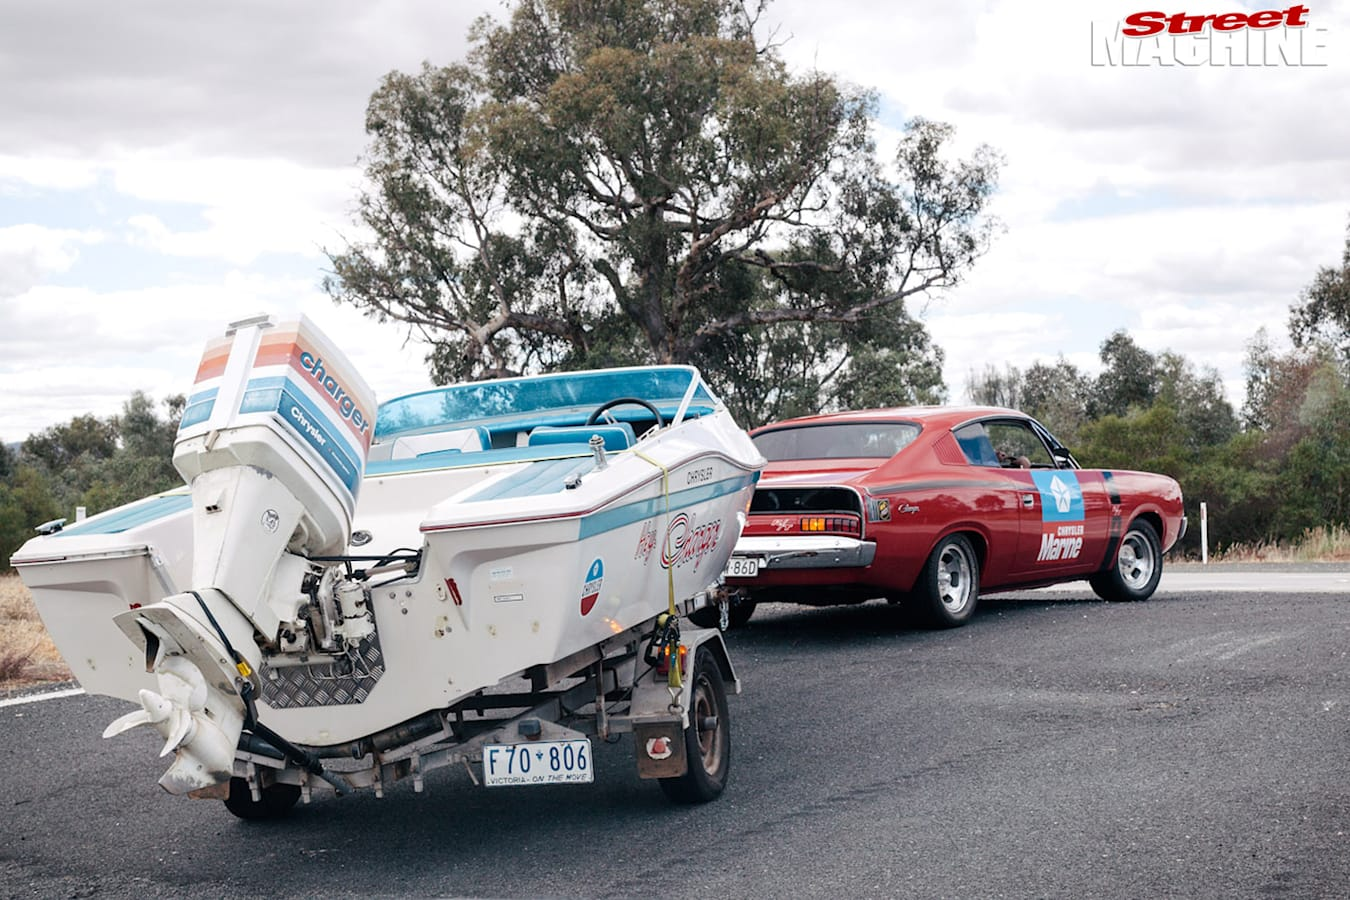 Charger -towing -boat -trailer -cotm